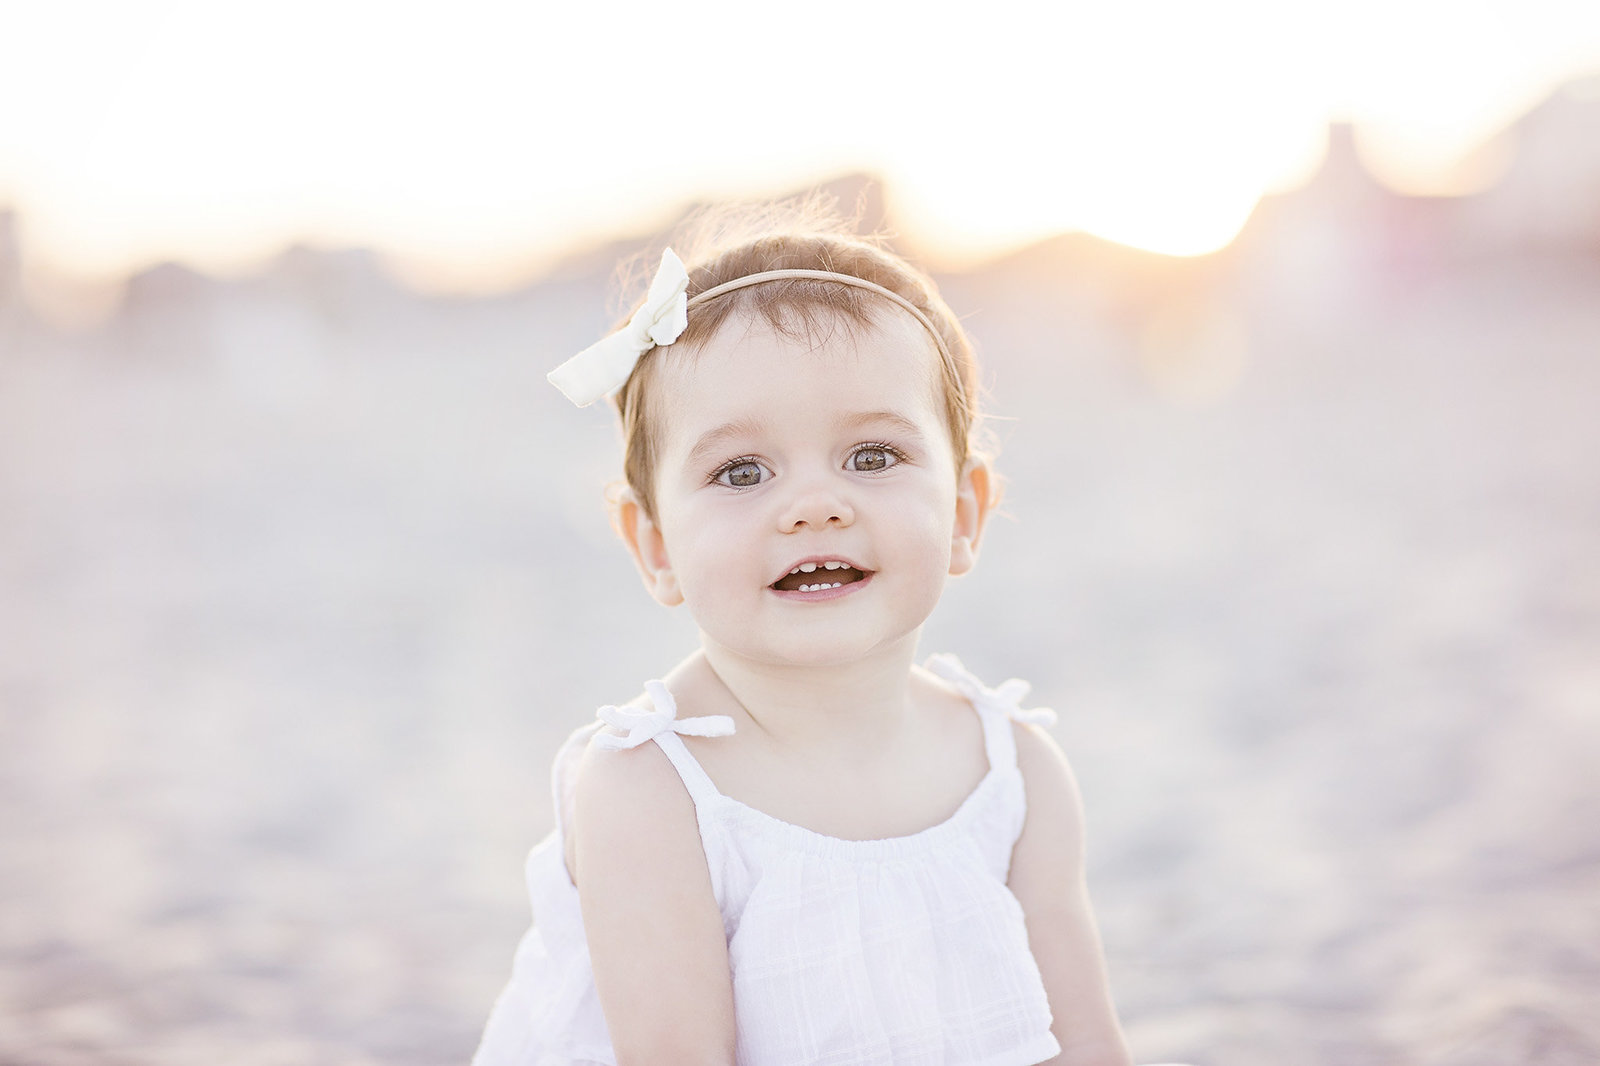 Skylar_Baby_One_Year_Beach_Portrait_Jaimie_Macari_Photo